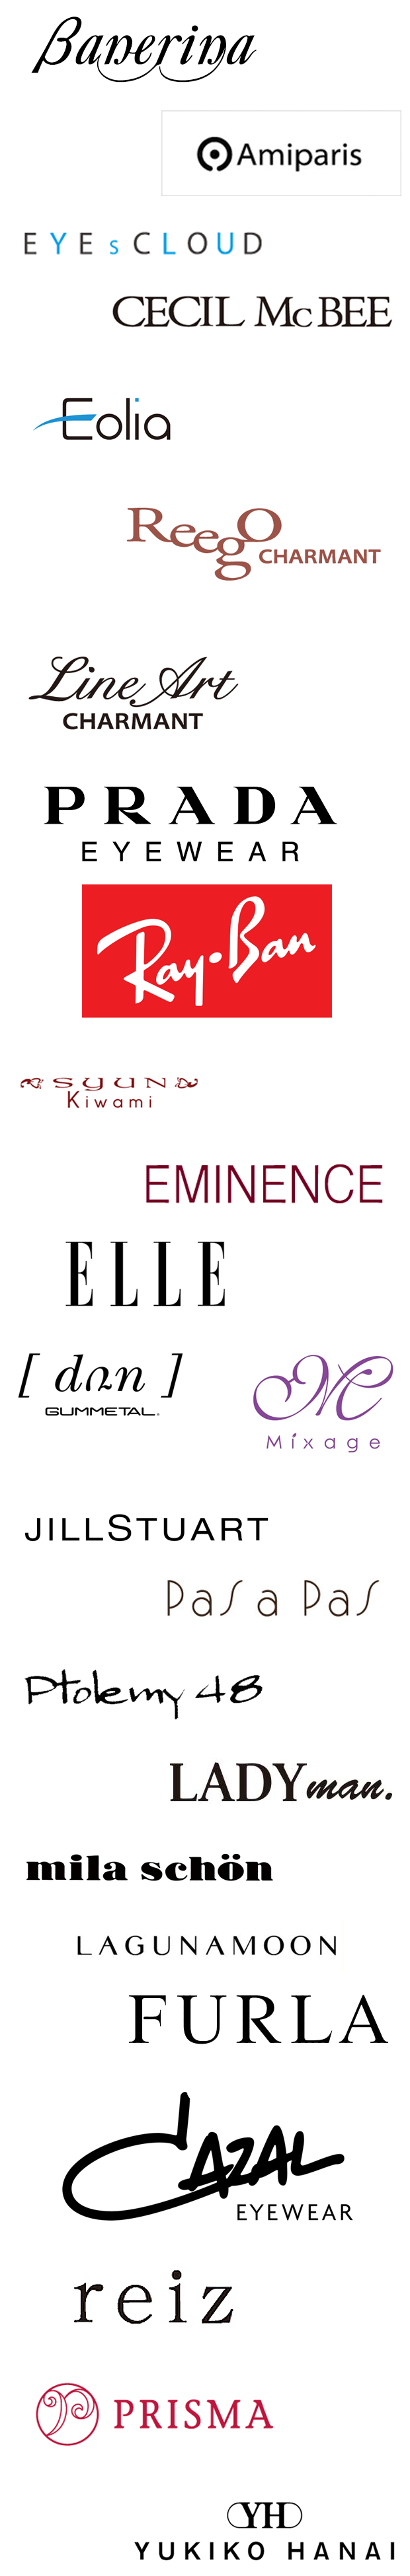 brand_womens_04.png